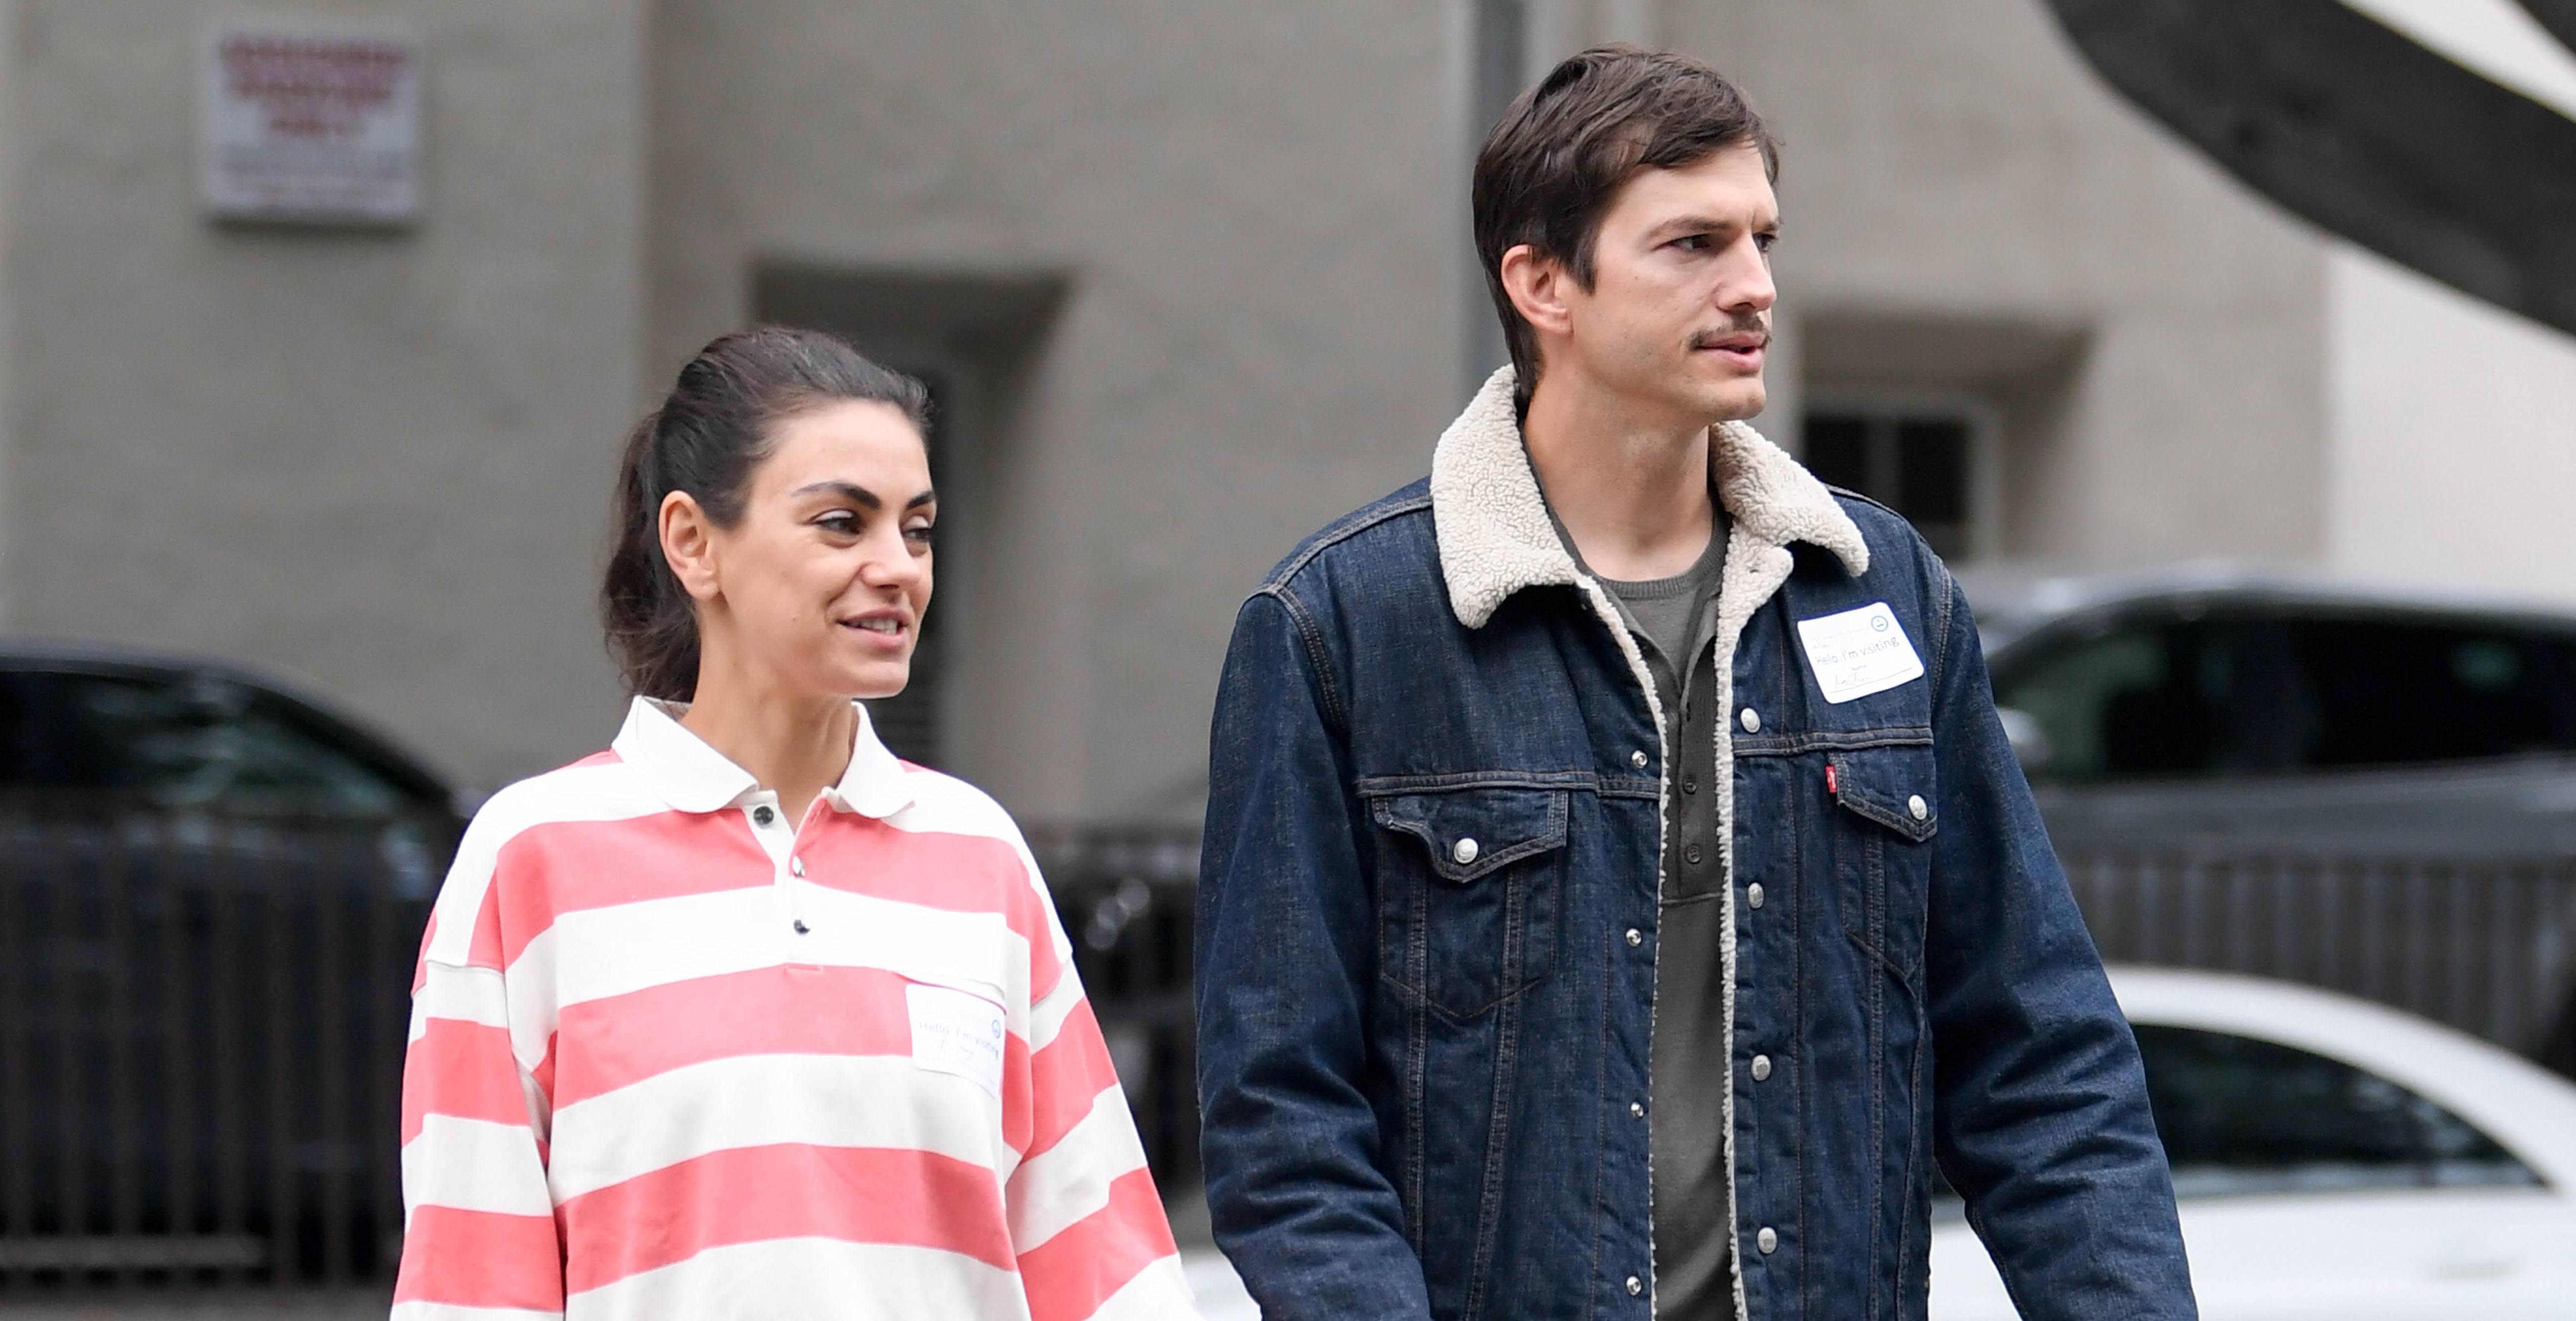 Mila Kunis and Ashton Kutcher Hold Hands While Touring Preschools in L.A. — See the Pics!